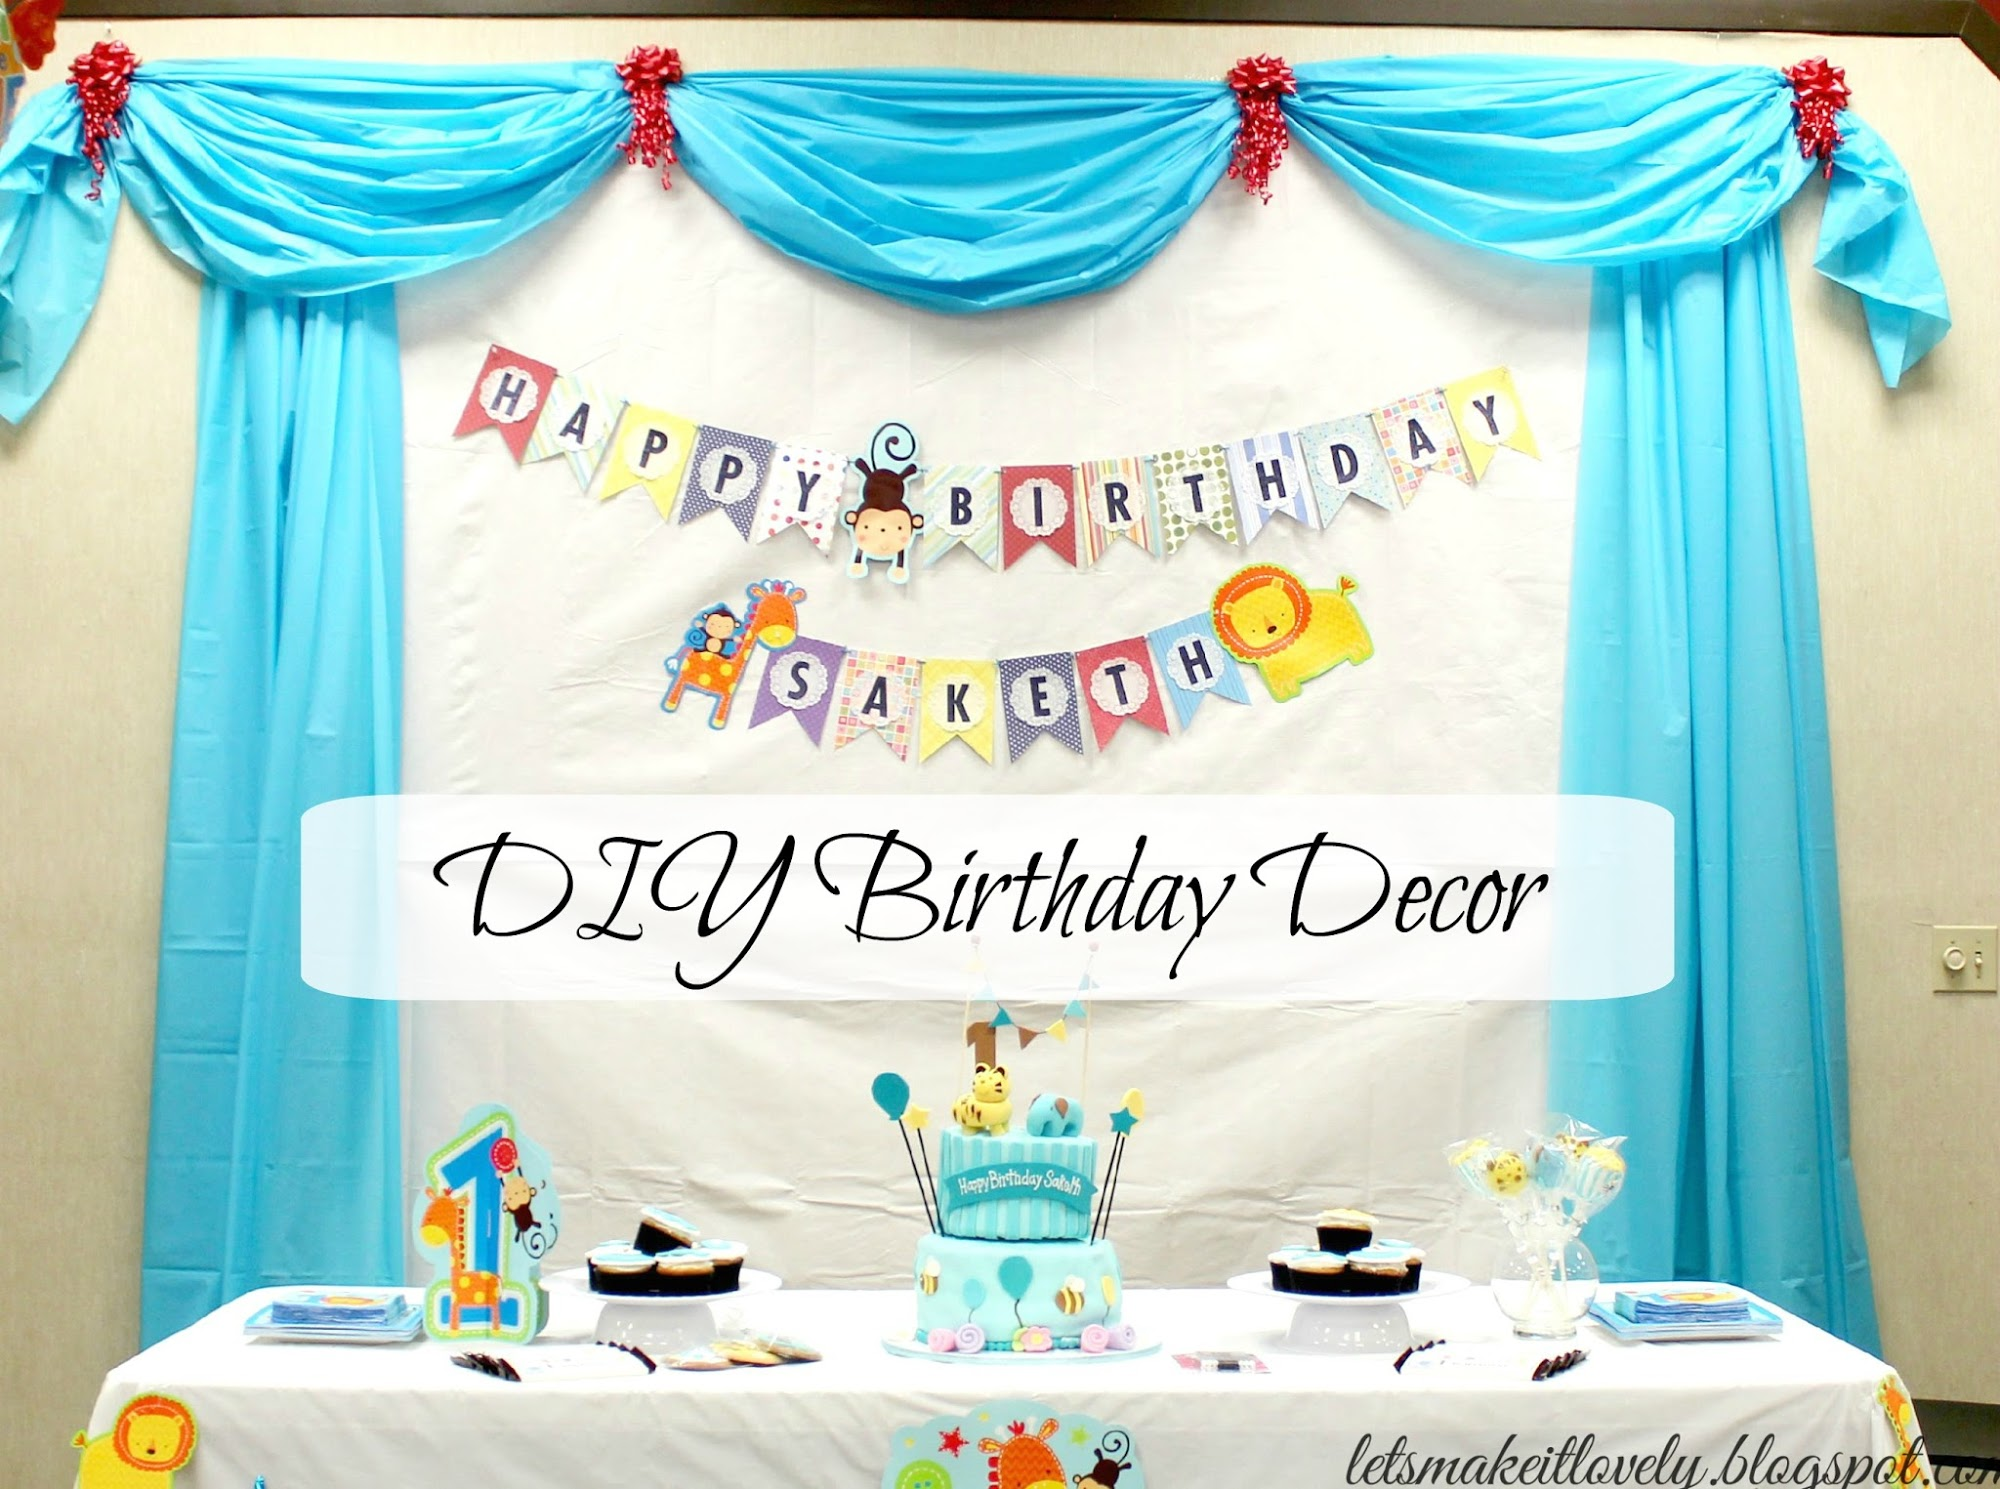 Let's make it lovely: DIY Birthday Party Backdrop, Decor and More